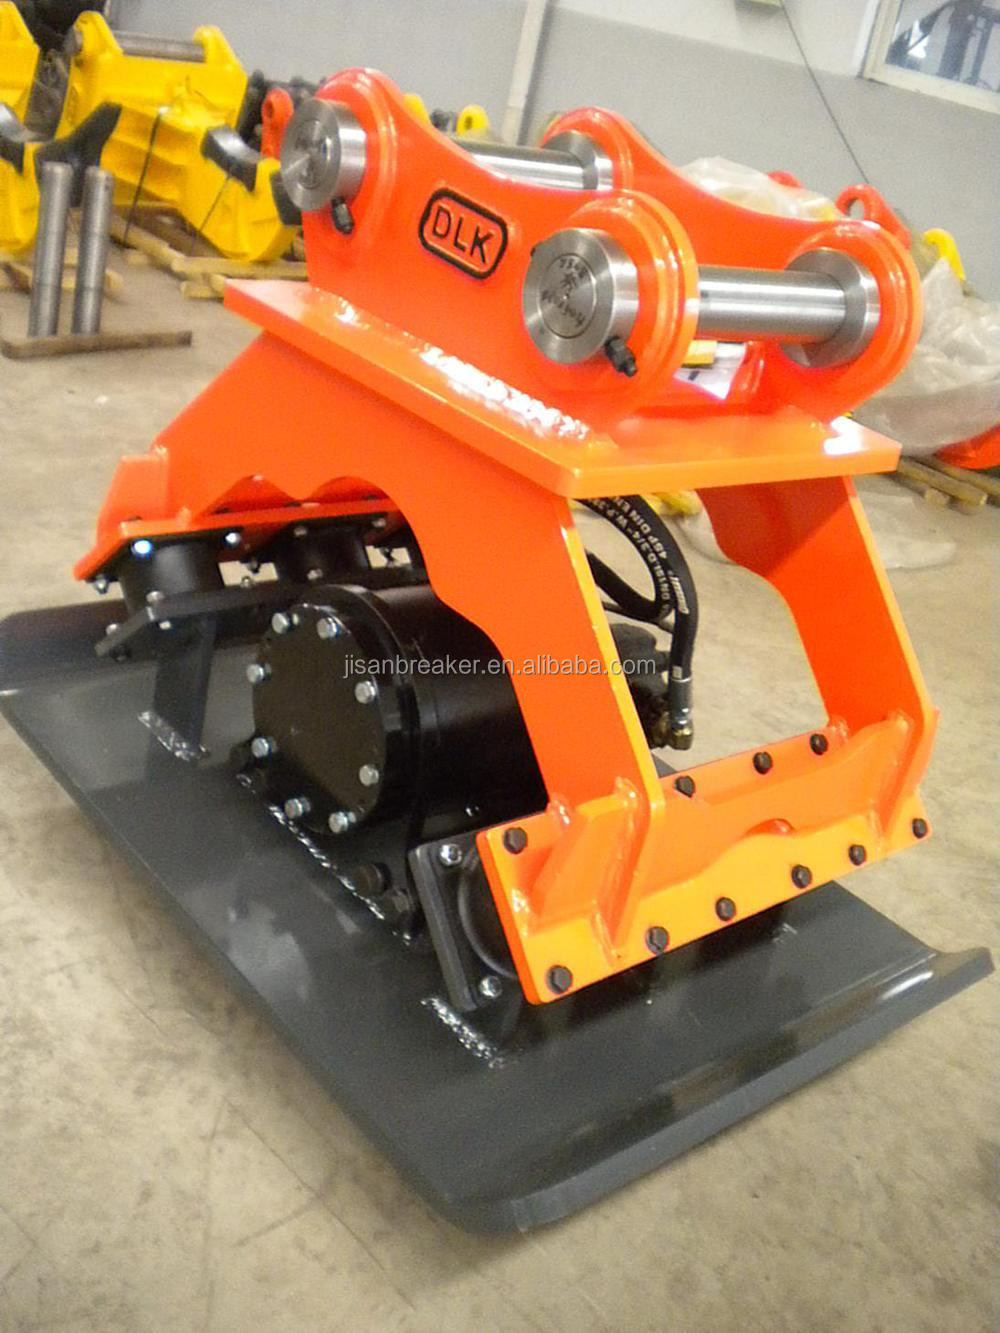 Excavator vibrating plate compactor for 15tons carrier